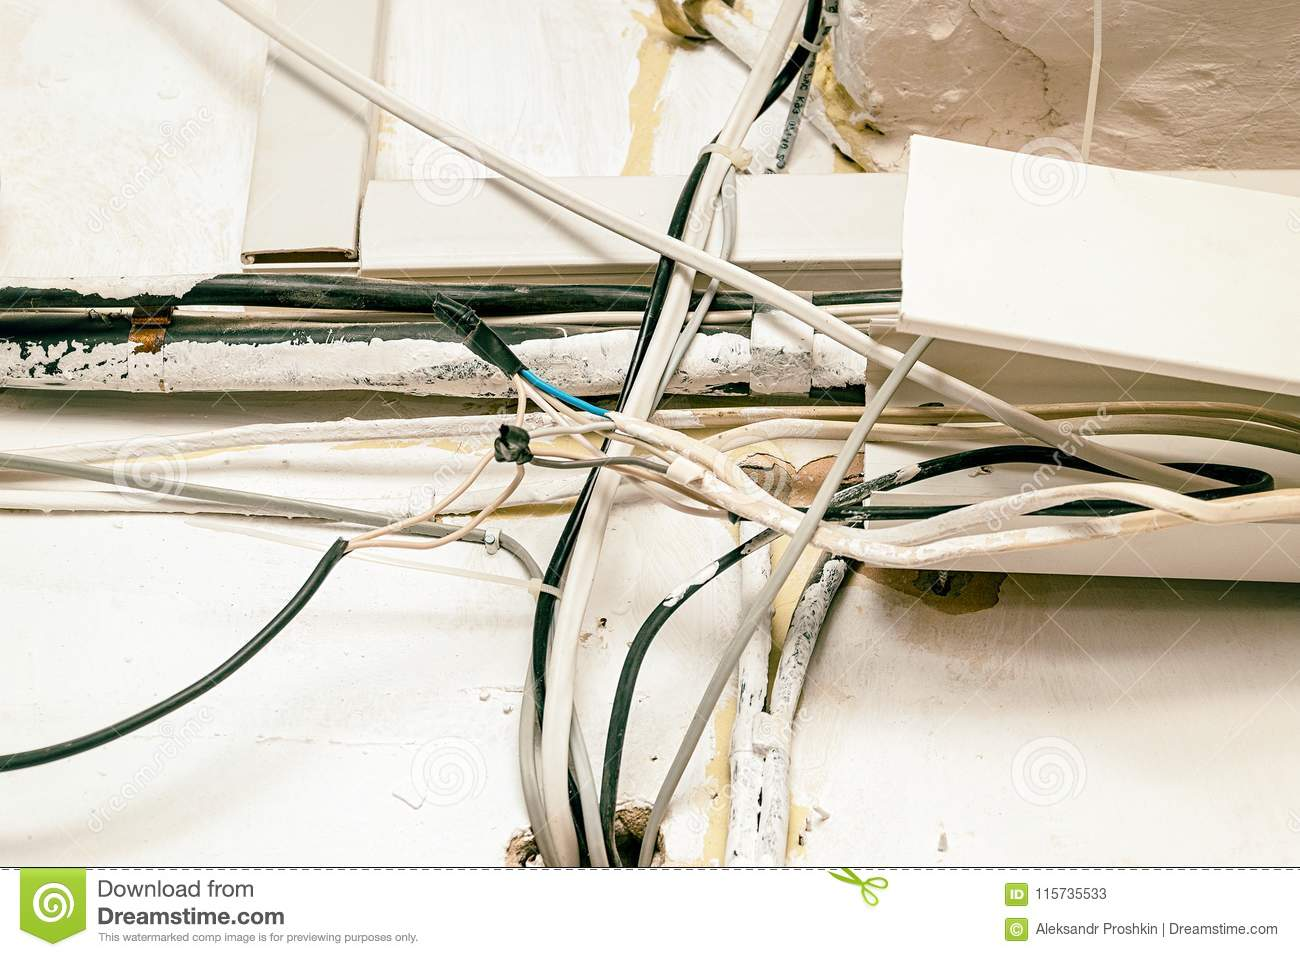 Marvelous Hazard Electrical Wiring Stock Image Image Of Inspection 115735533 Wiring Cloud Hisonuggs Outletorg